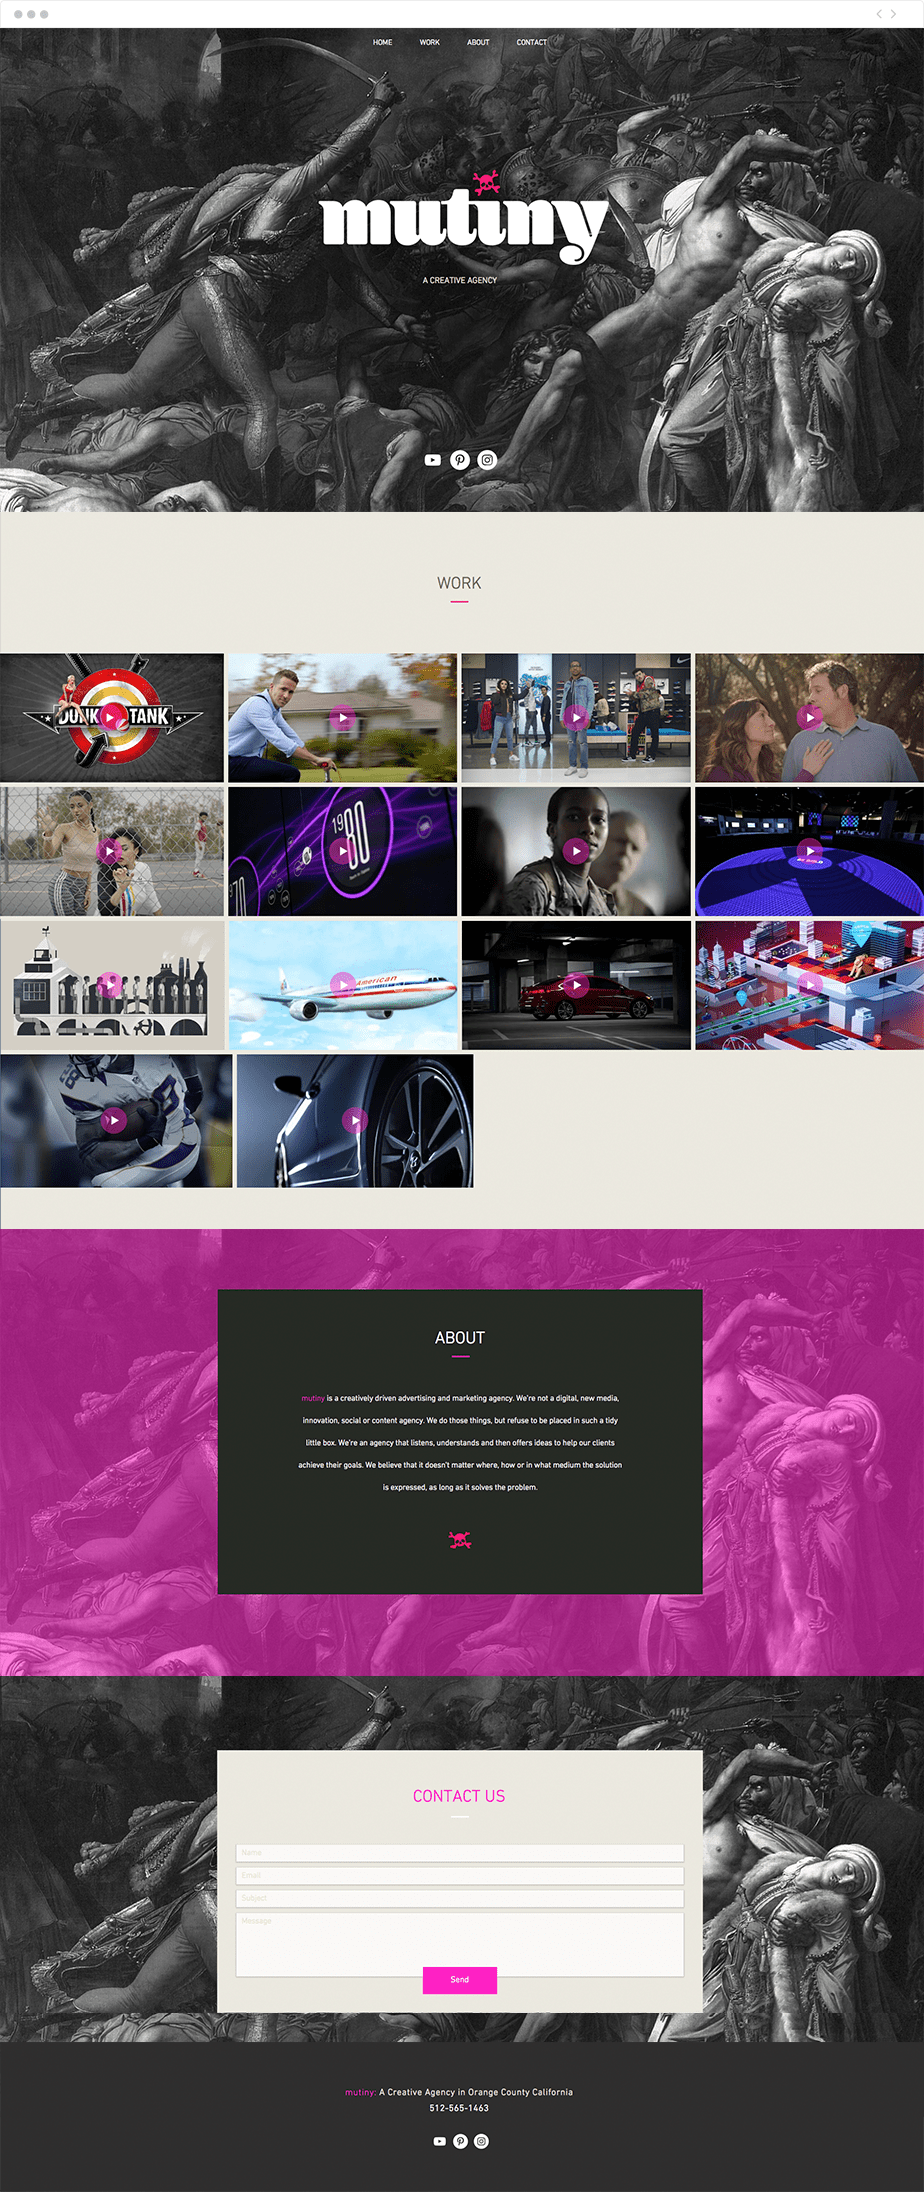 example de site one-page - Mutiny